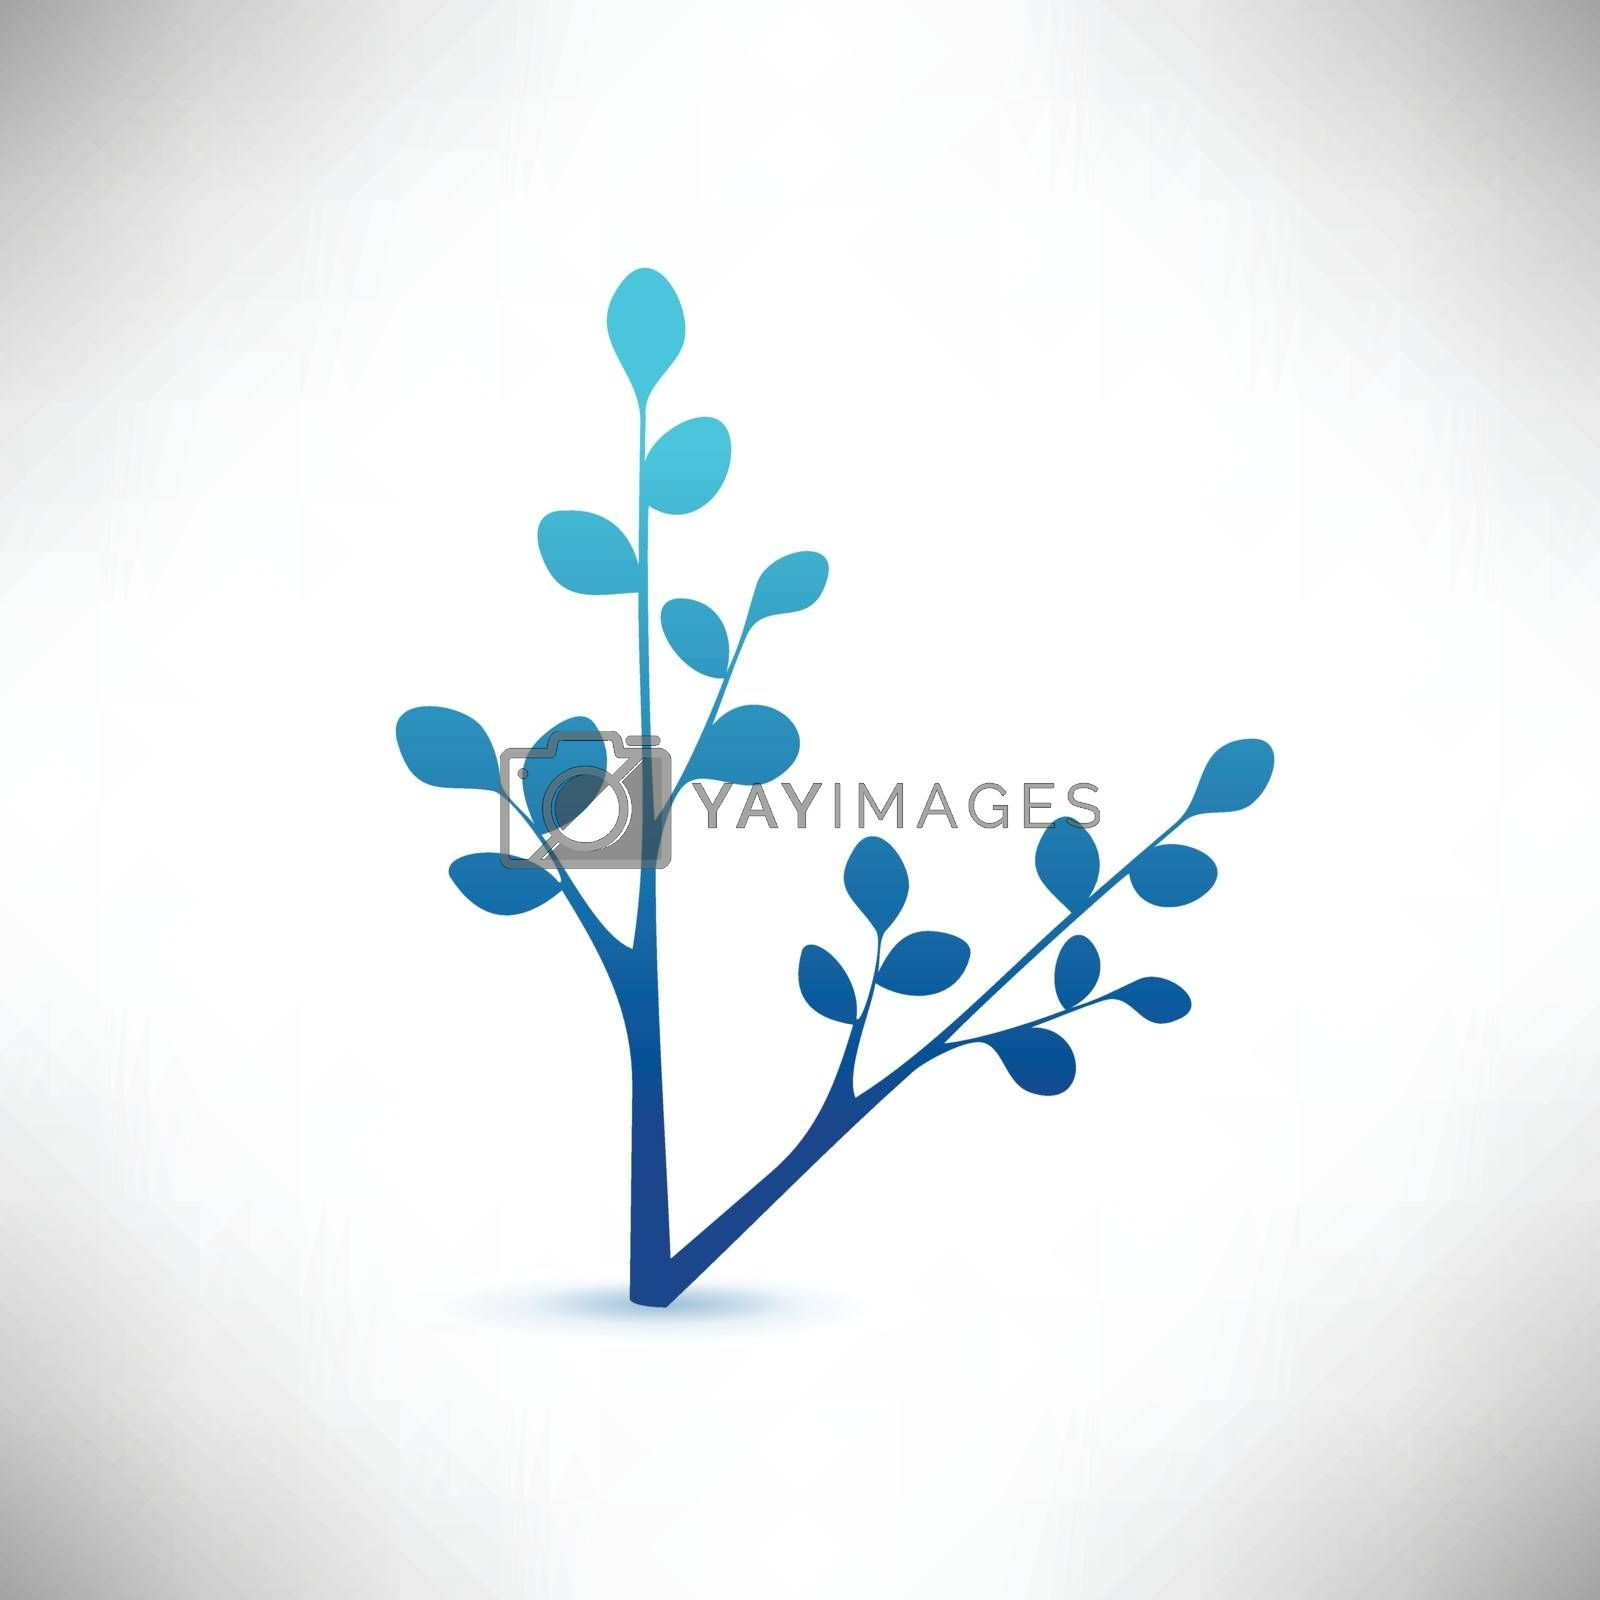 Decorative branch with leaves editable vector illustration